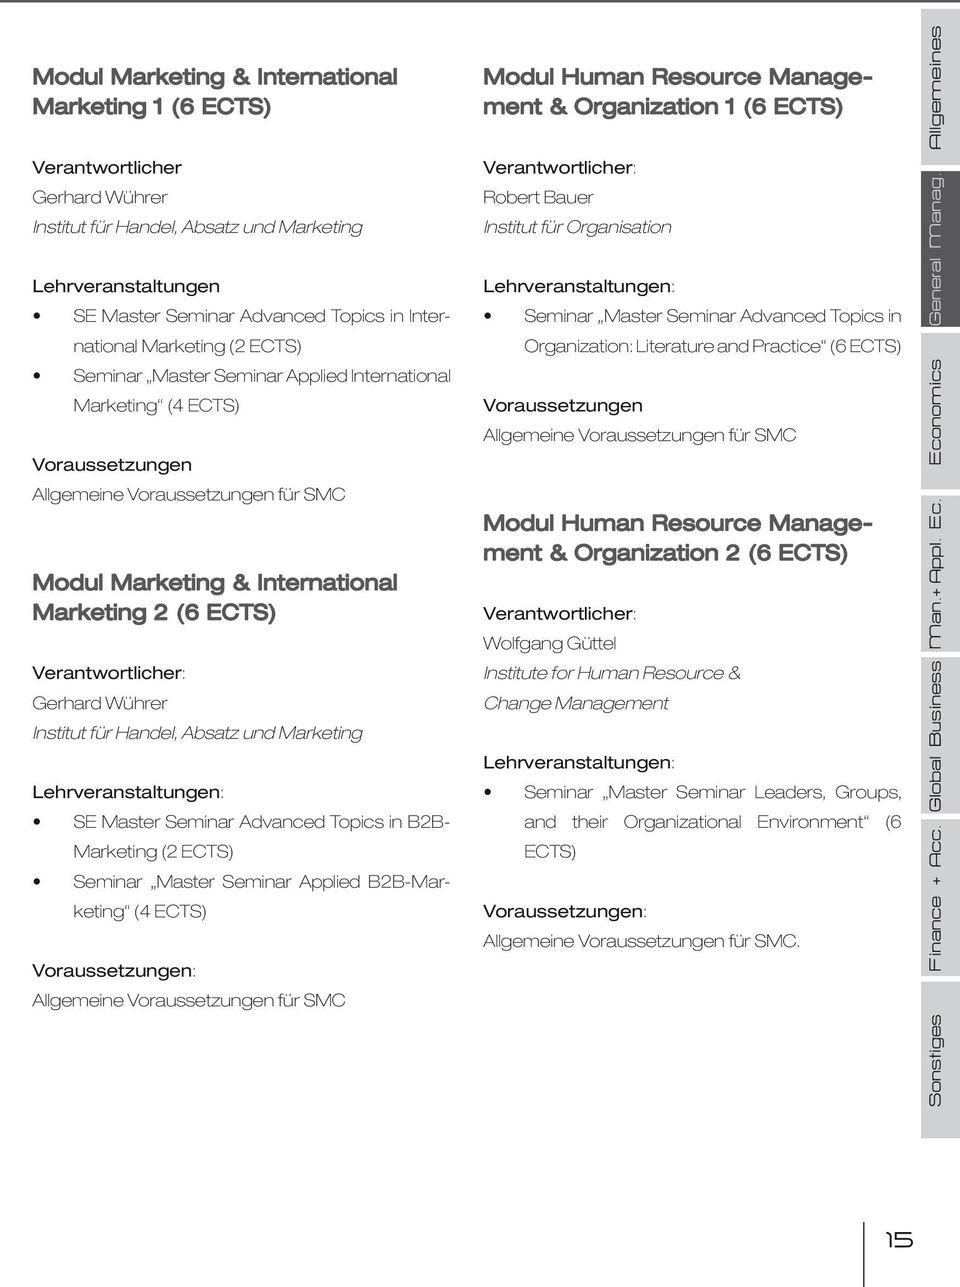 Marketing (4 ECTS) Voraussetzungen Allgemeine Voraussetzungen für SMC Modul Marketing & International Marketing 2 (6 ECTS) Verantwortlicher: Gerhard Wührer Institut für Handel, Absatz und Marketing